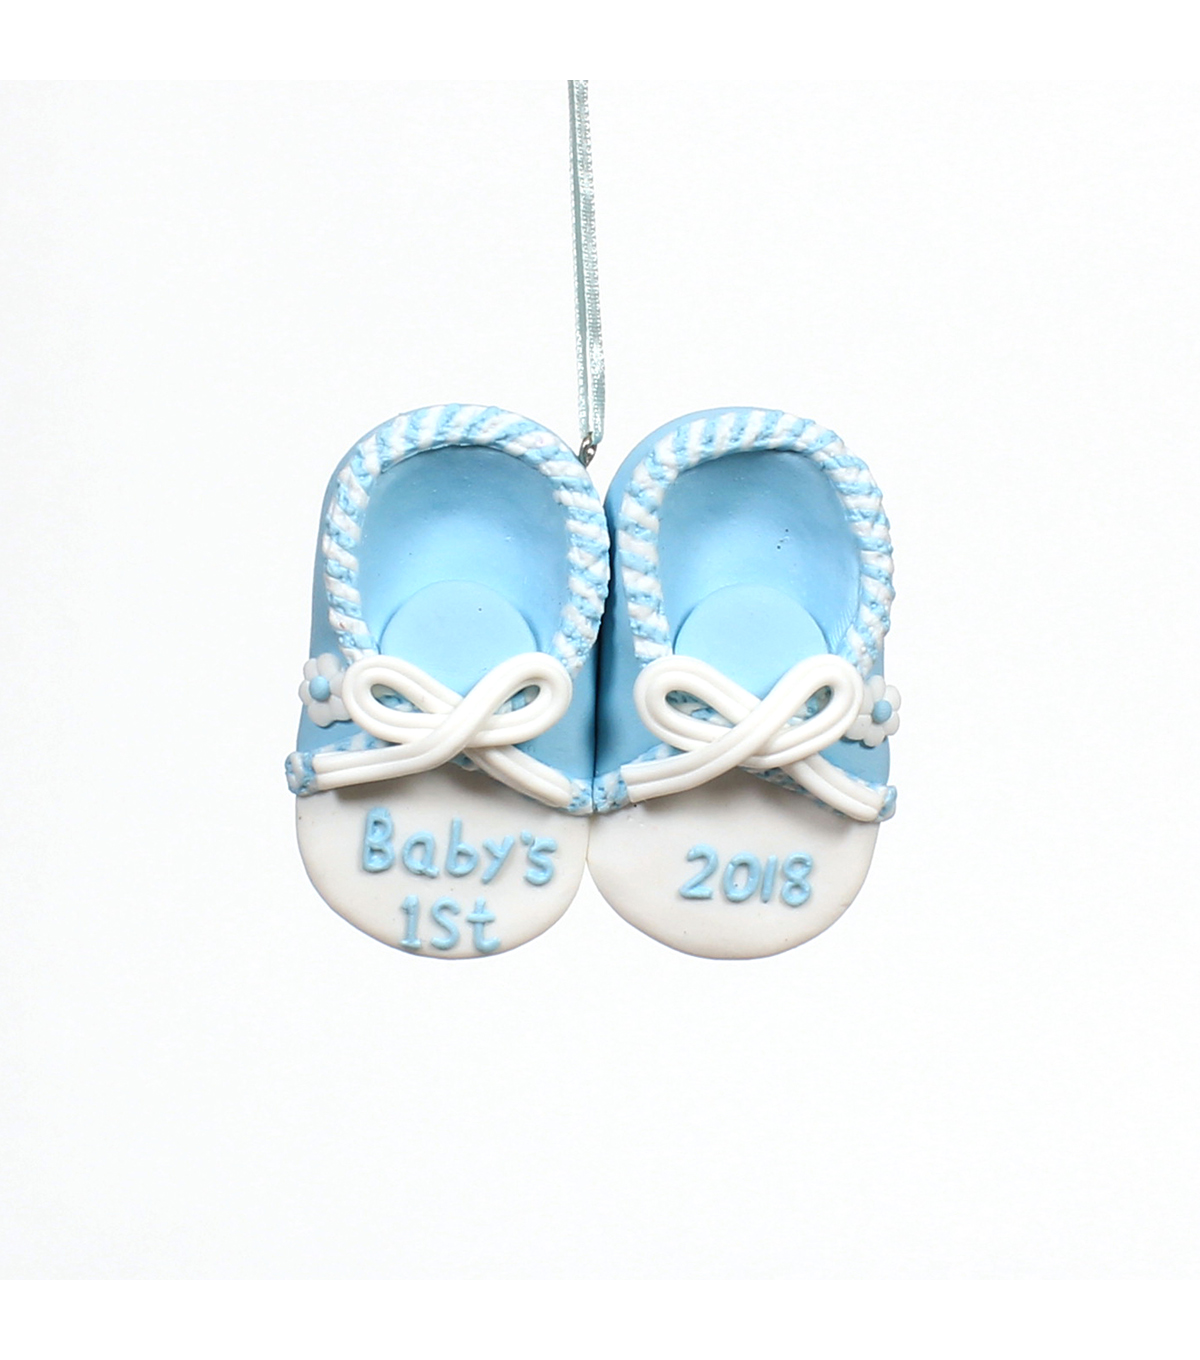 Maker\u0027s Holiday Christmas Baby Boy Shoes Ornament